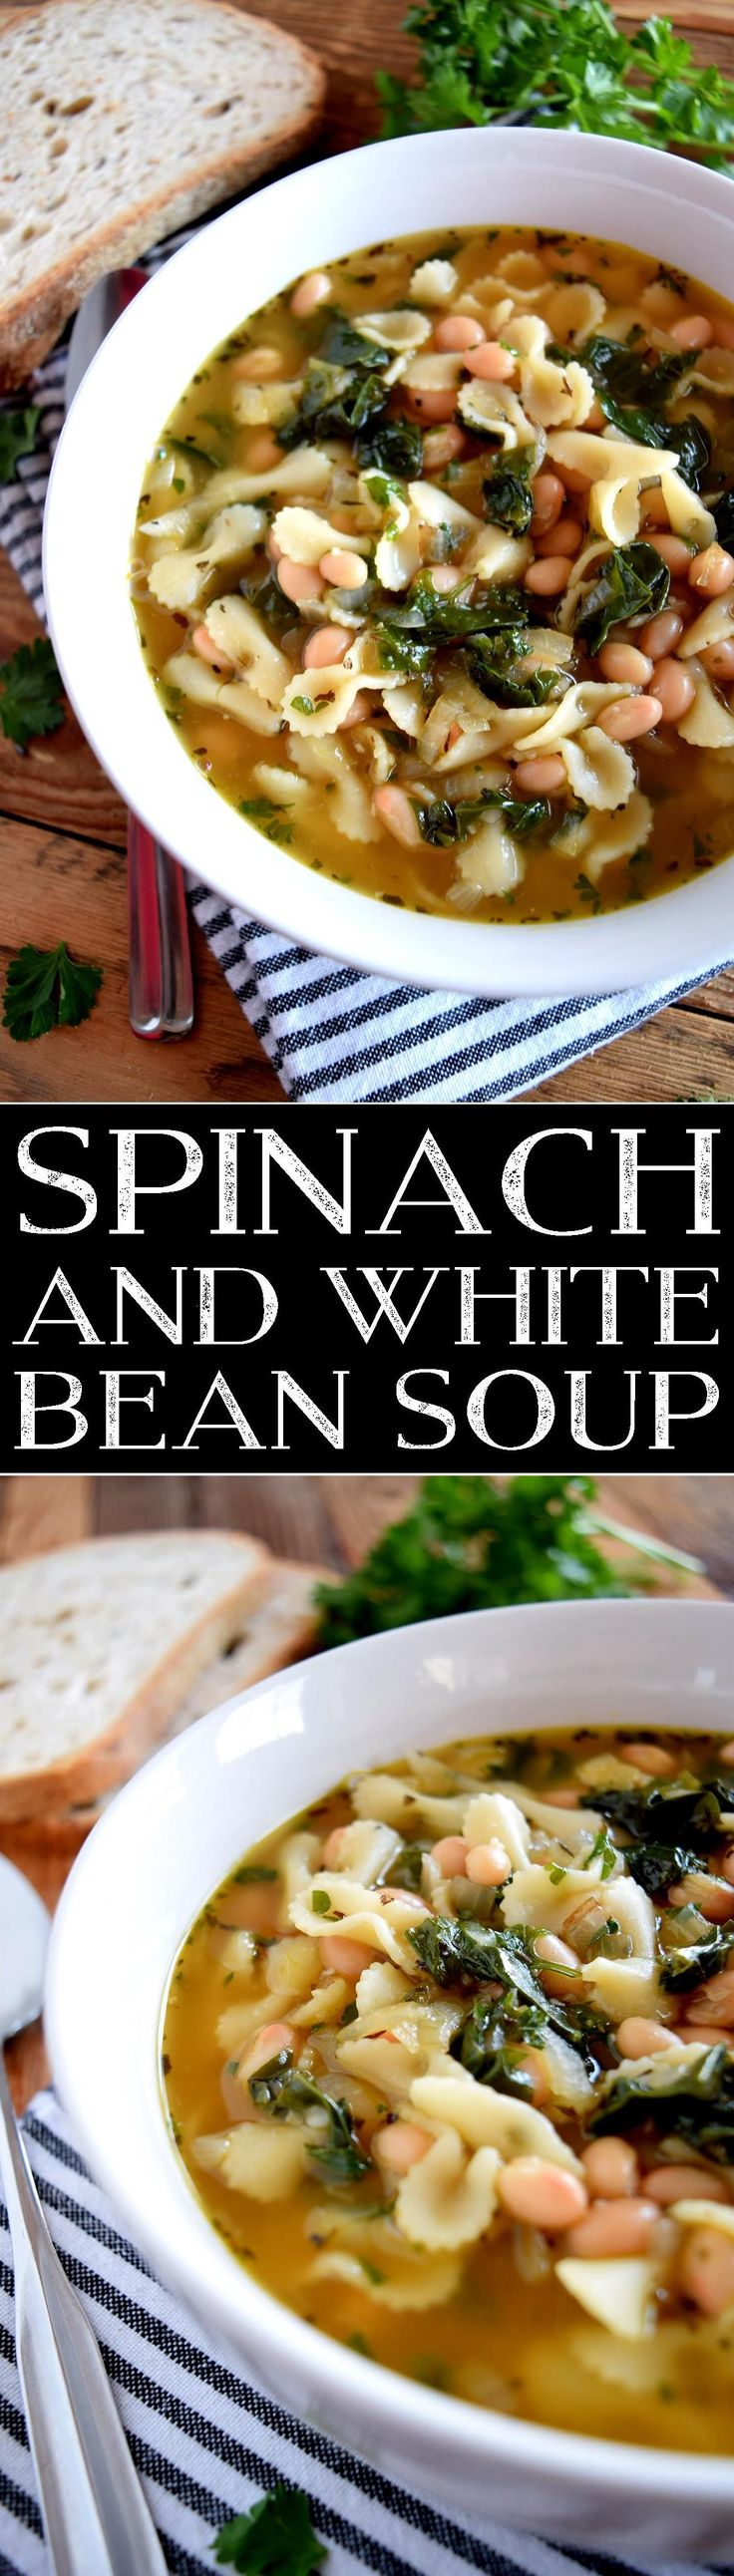 Spinach and White Bean Soup 1